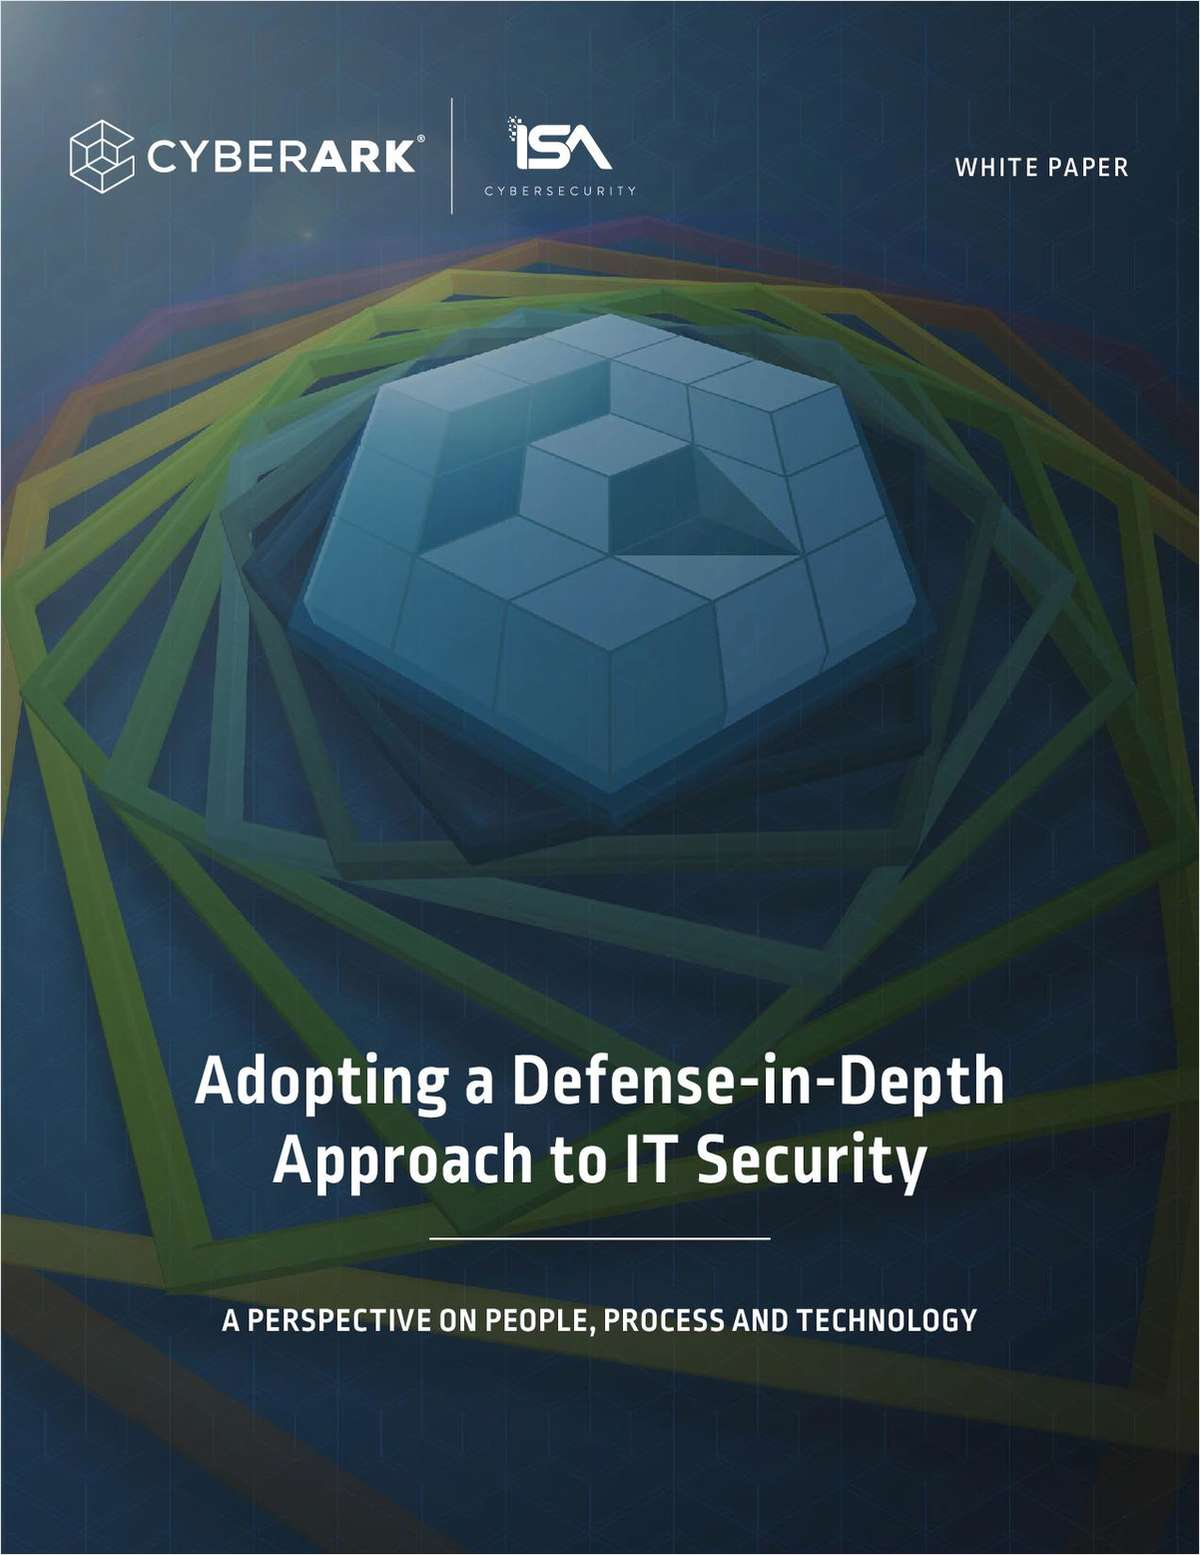 Adopting a Defense-in-Depth Approach to IT Security